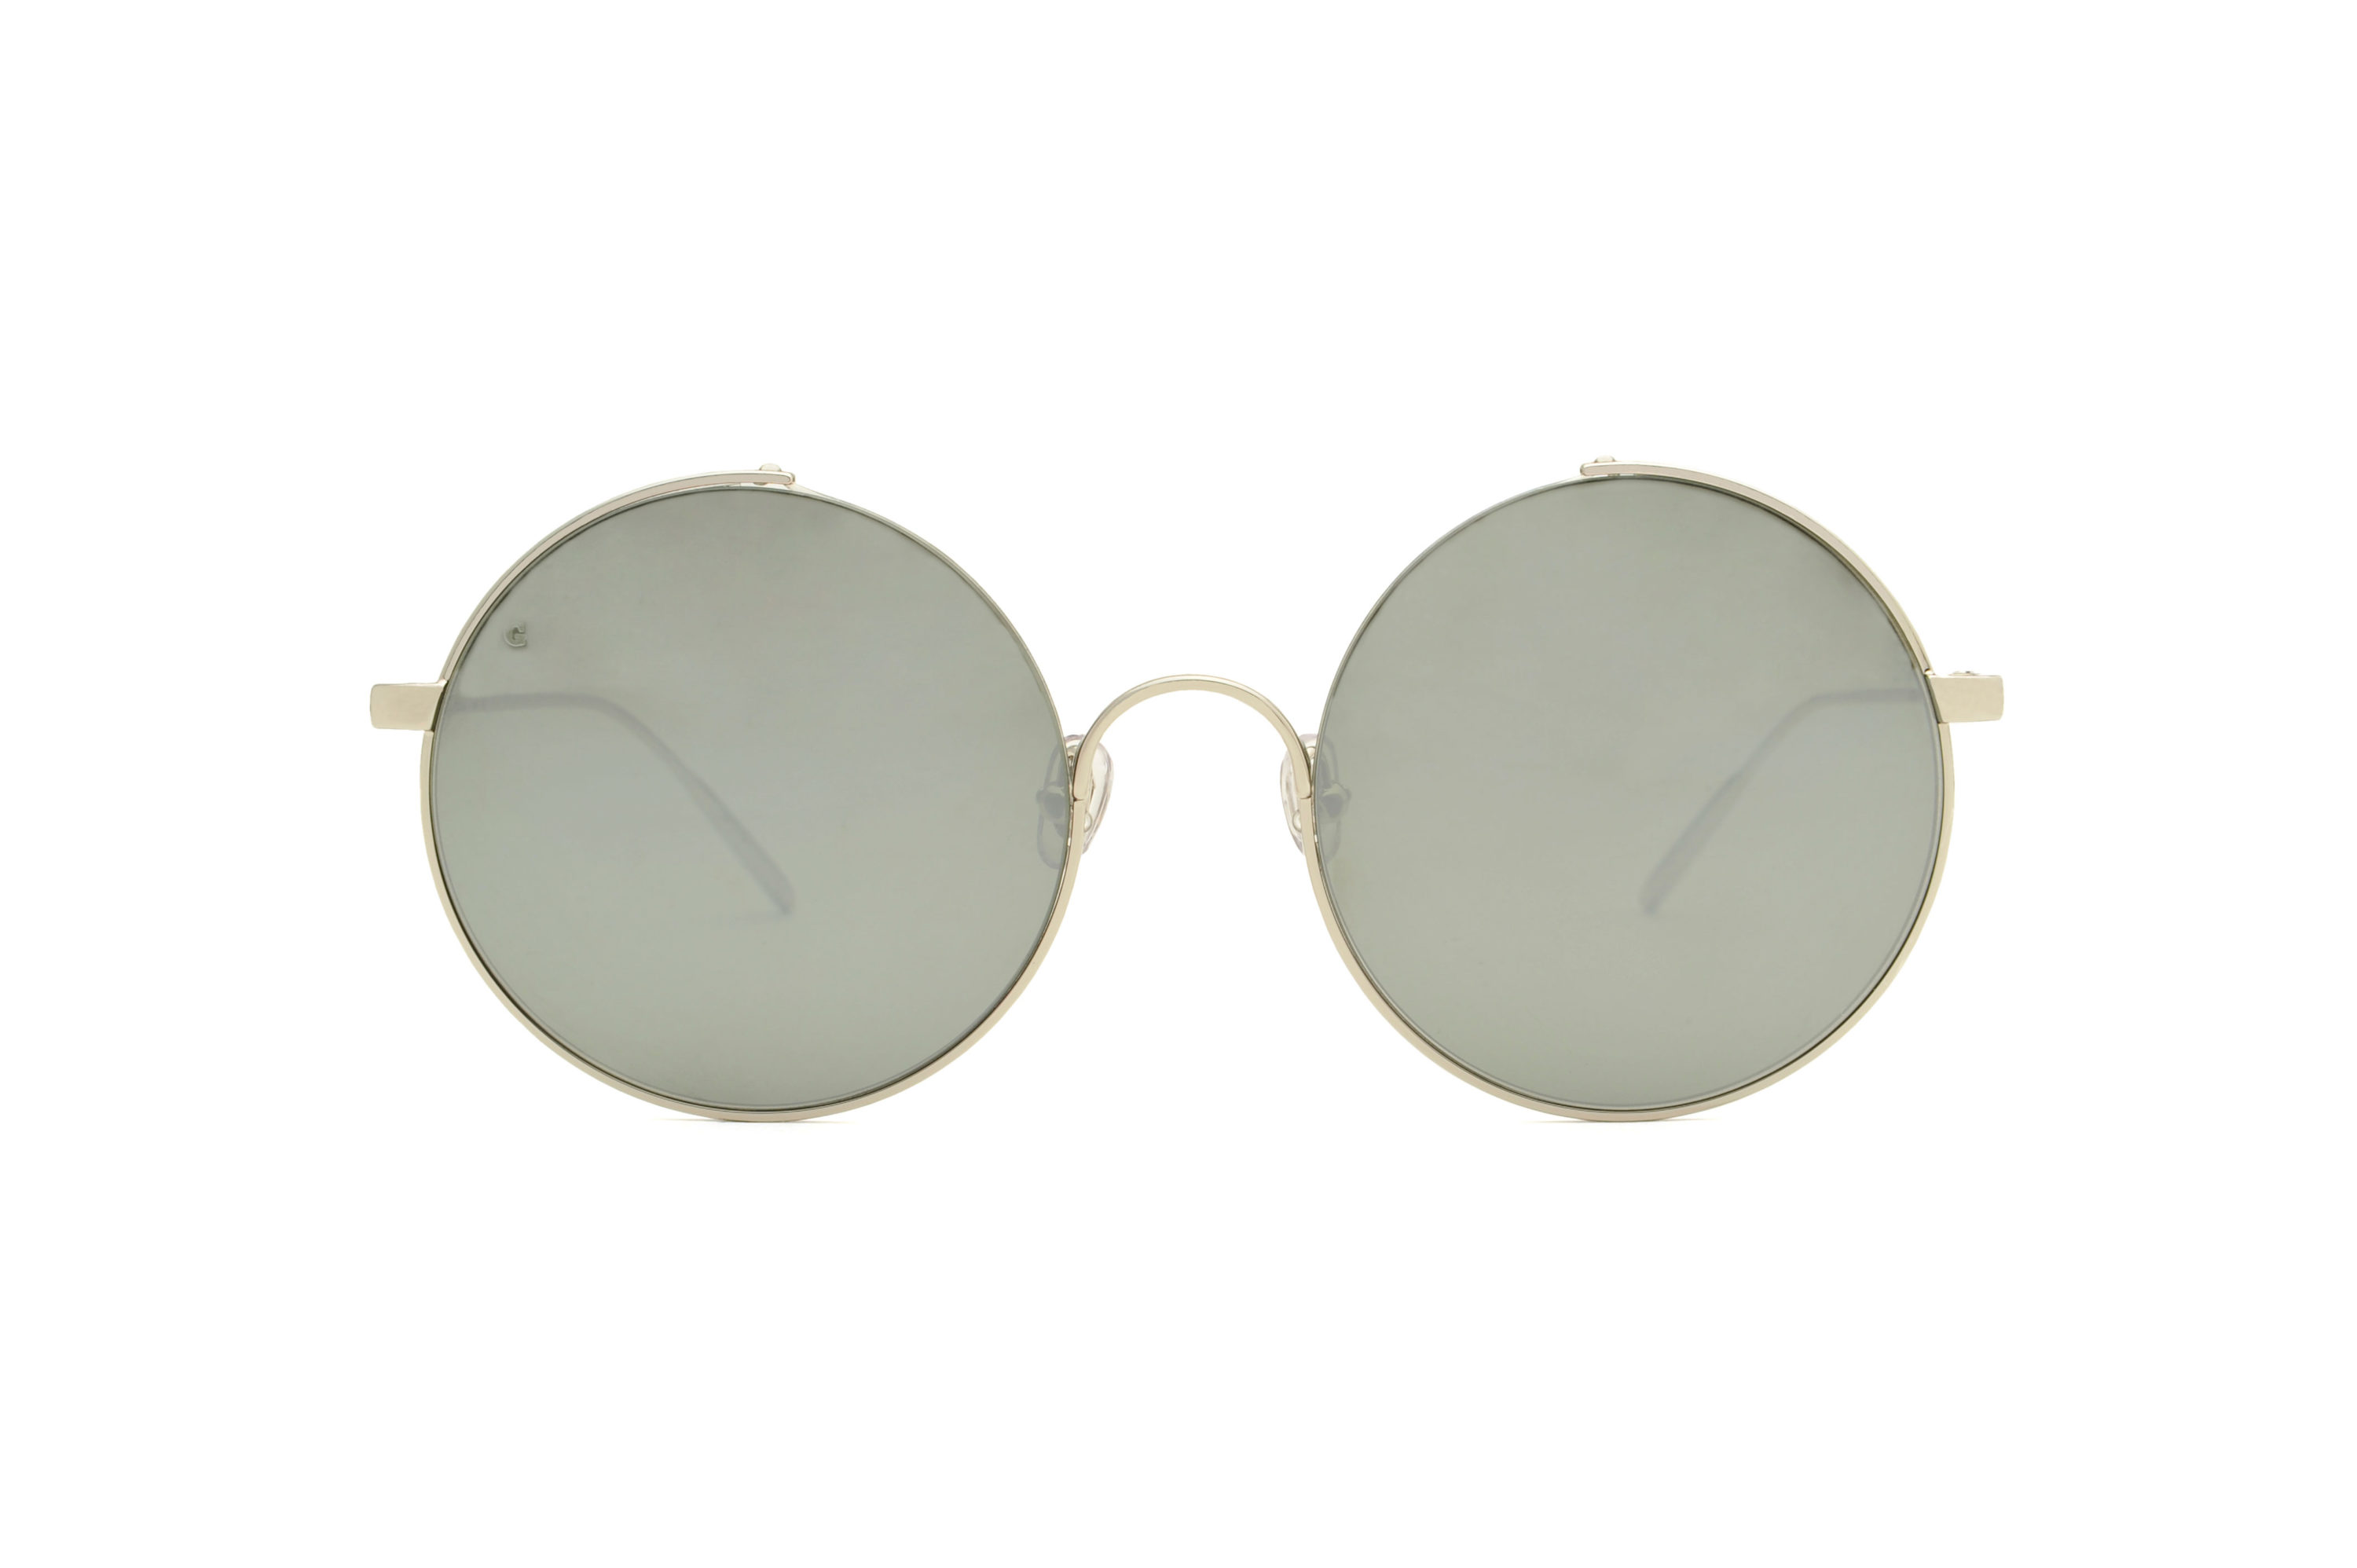 Bali metal rounded silver sunglasses by GIGI Studios